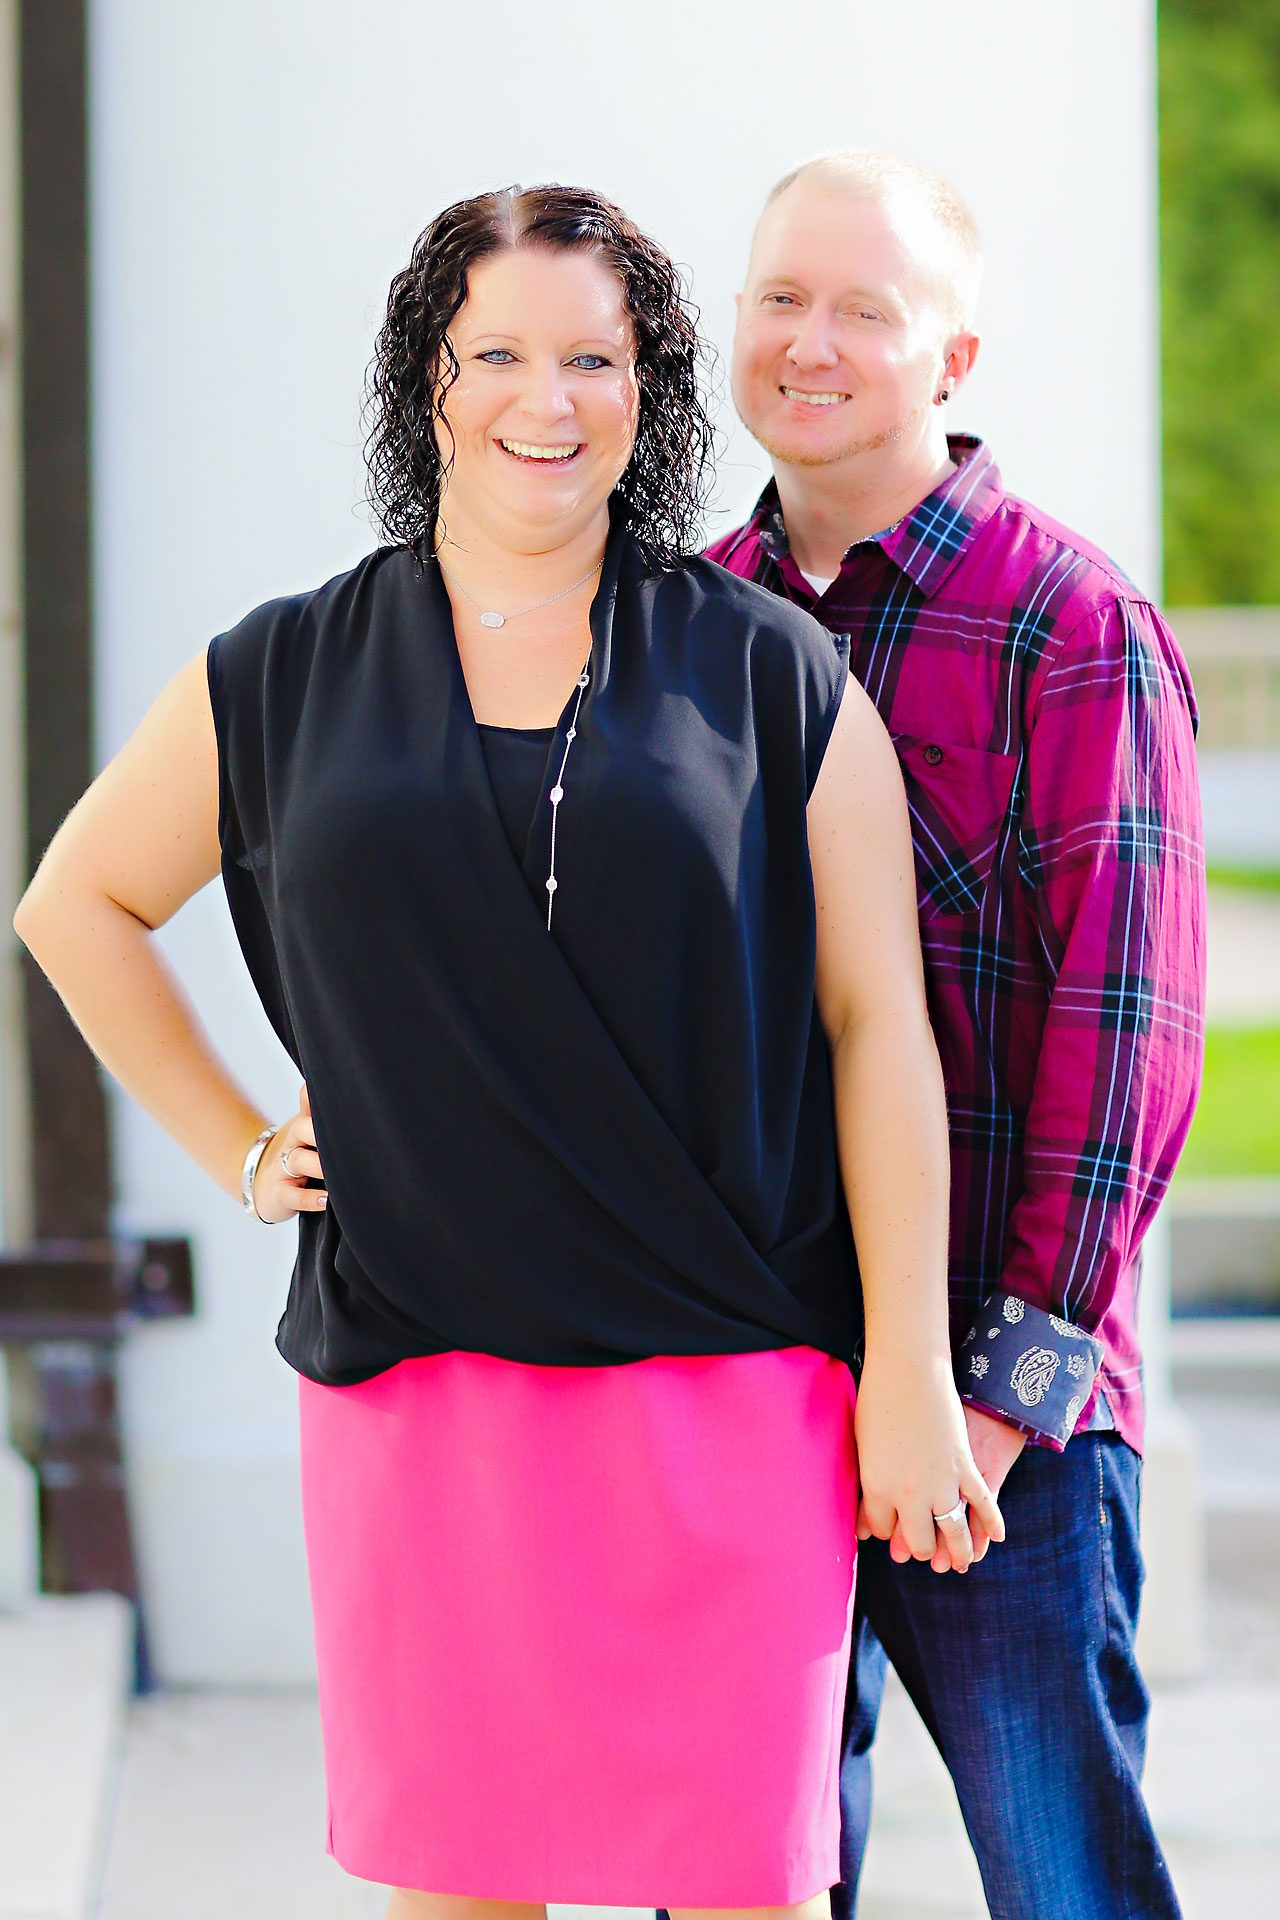 Brianna Eric Indianapolis Engagement Photographs 070